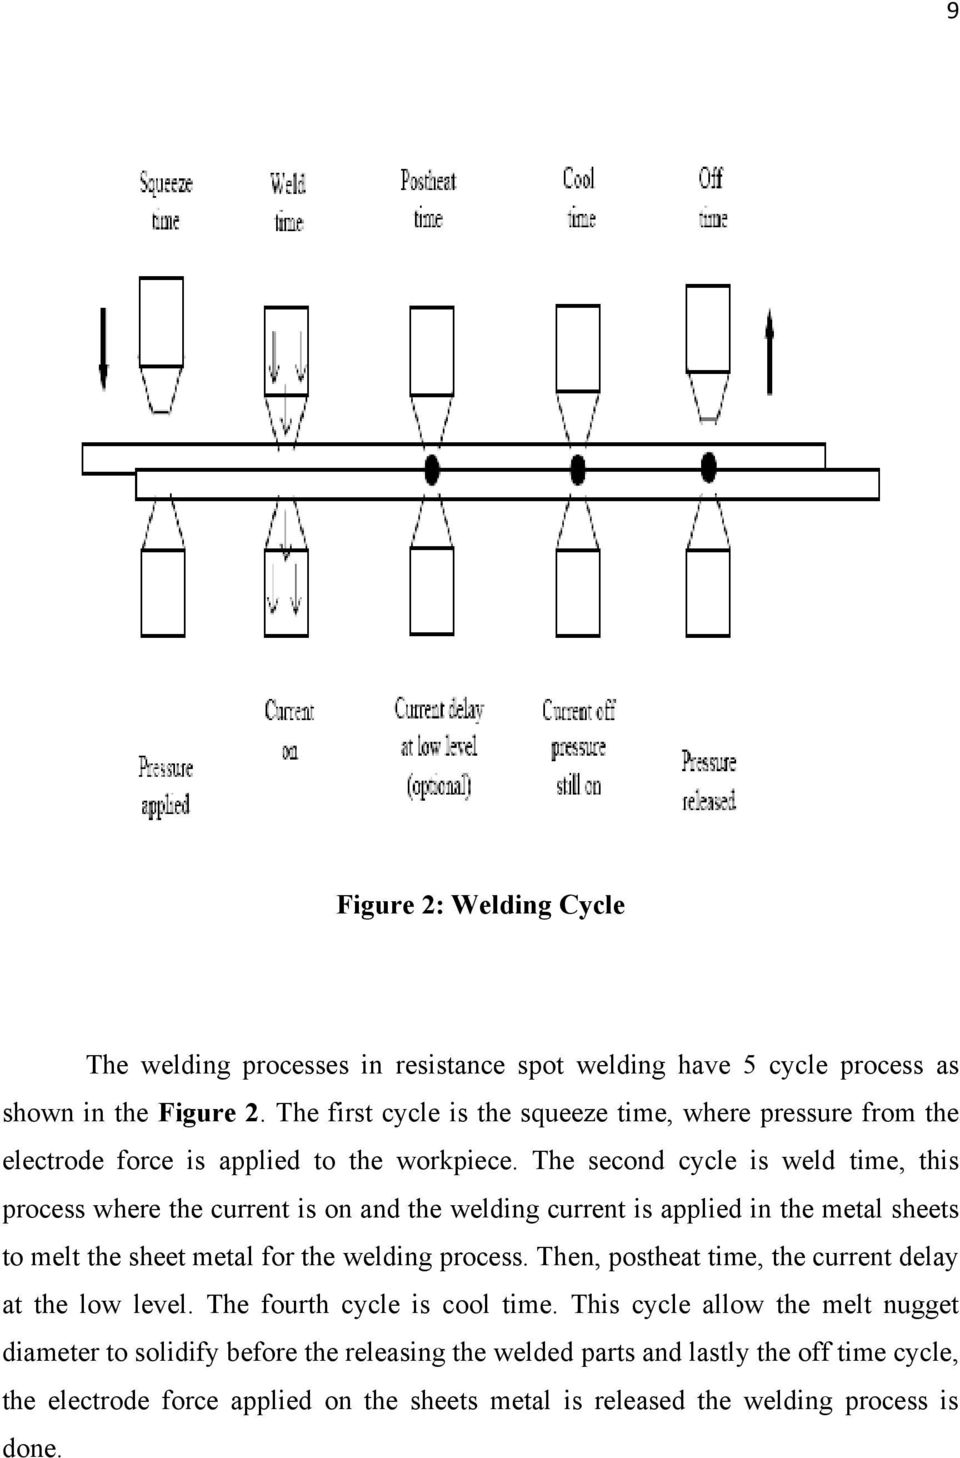 Faculty Of Mechanical Engineering University Malaysia Pahang Pdf Welding Lobe Diagram The Second Cycle Is Weld Time This Process Where Current On And